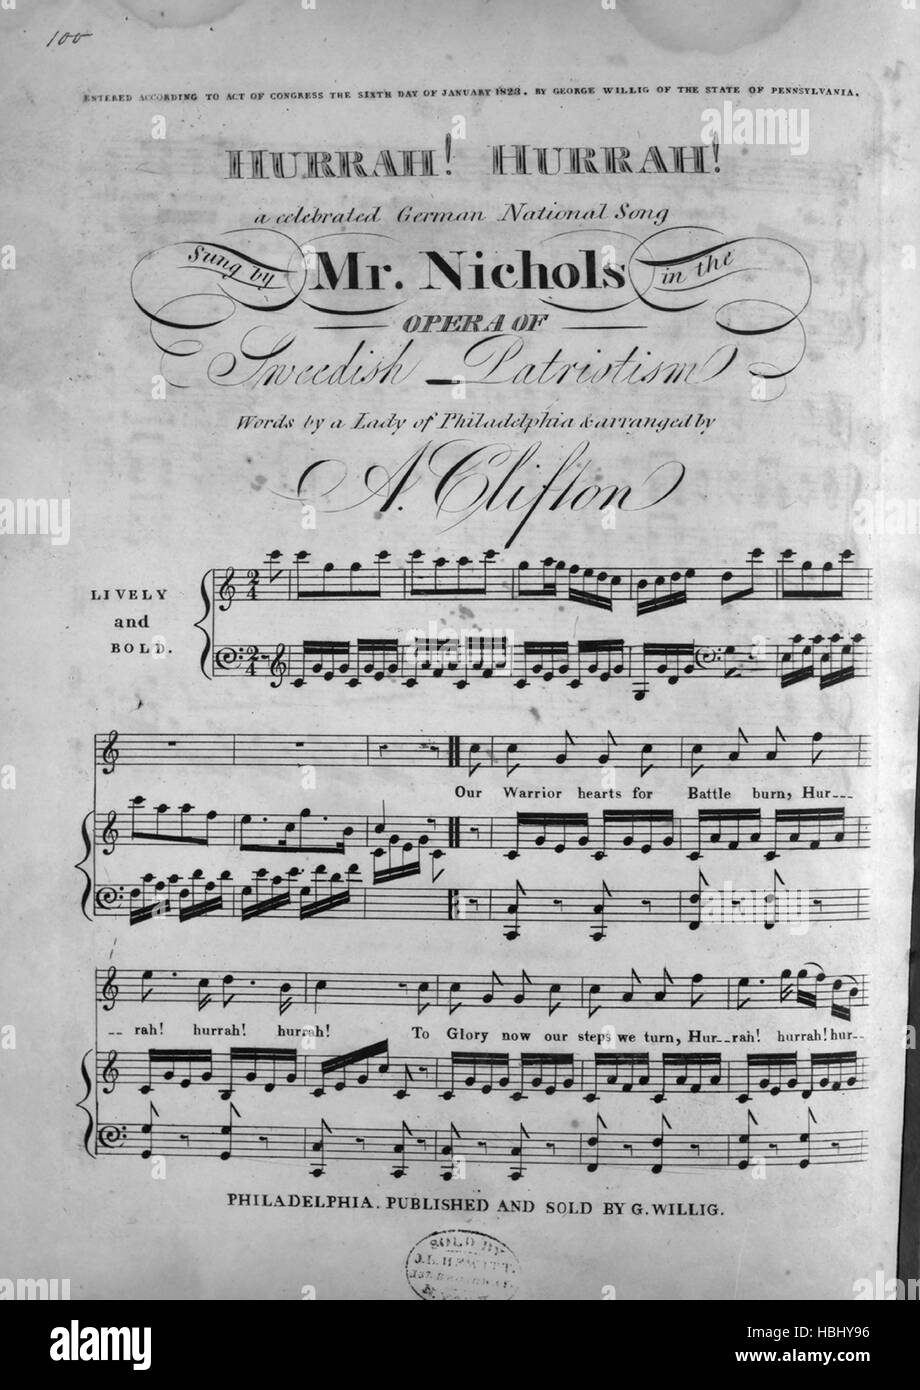 Sheet music cover image of the song 'Hurrah! Hurrah! A